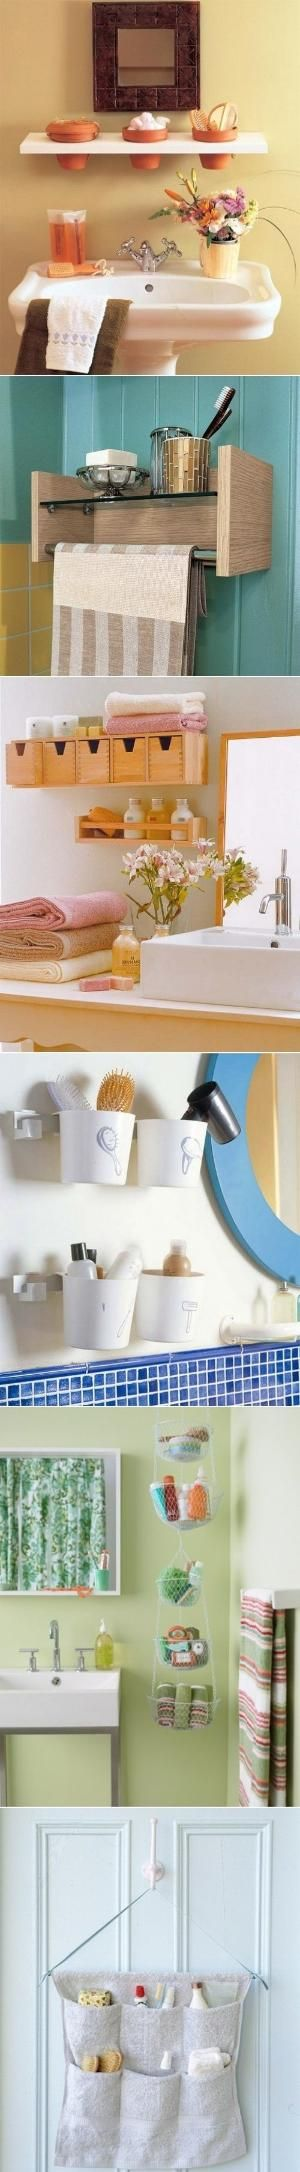 Beau DIY Bathroom Towel Storage: 7 Creative Ideas!